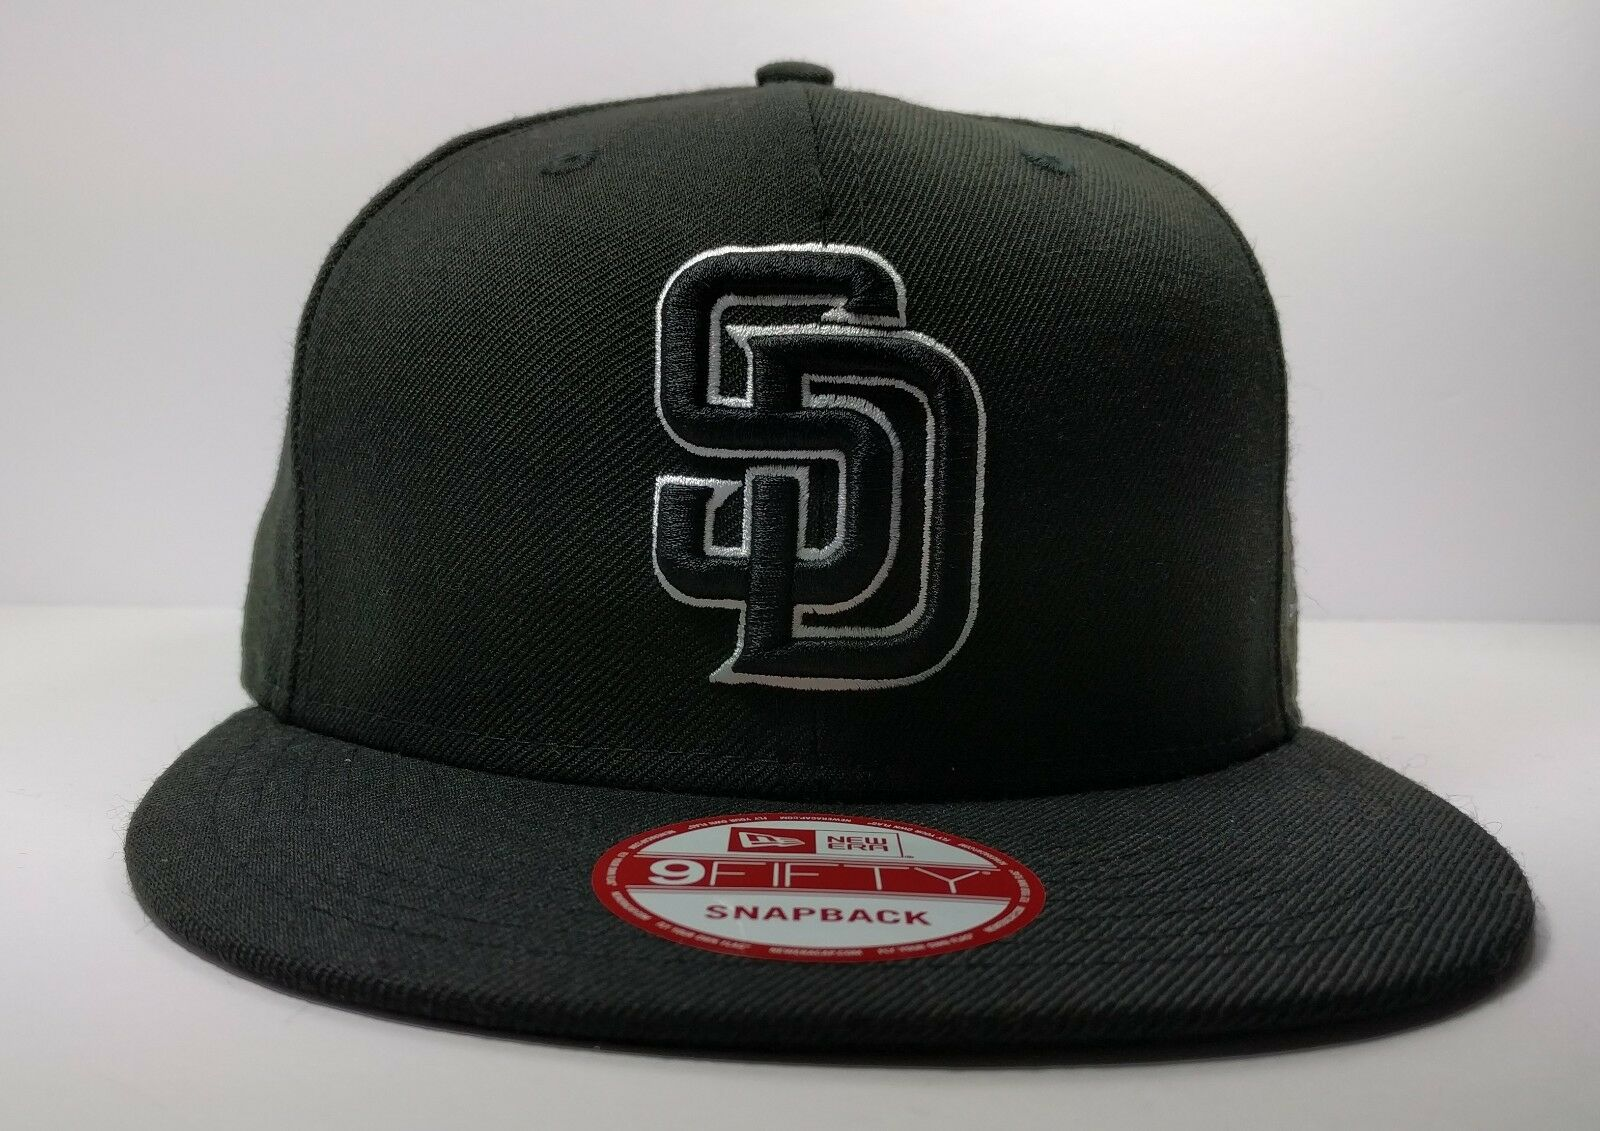 San Diego Padres New Era 9Fifty Black   White Logo Field Snapback Hat Cap  MLB 1 of 5Only 0 available ... 6400ac9decf